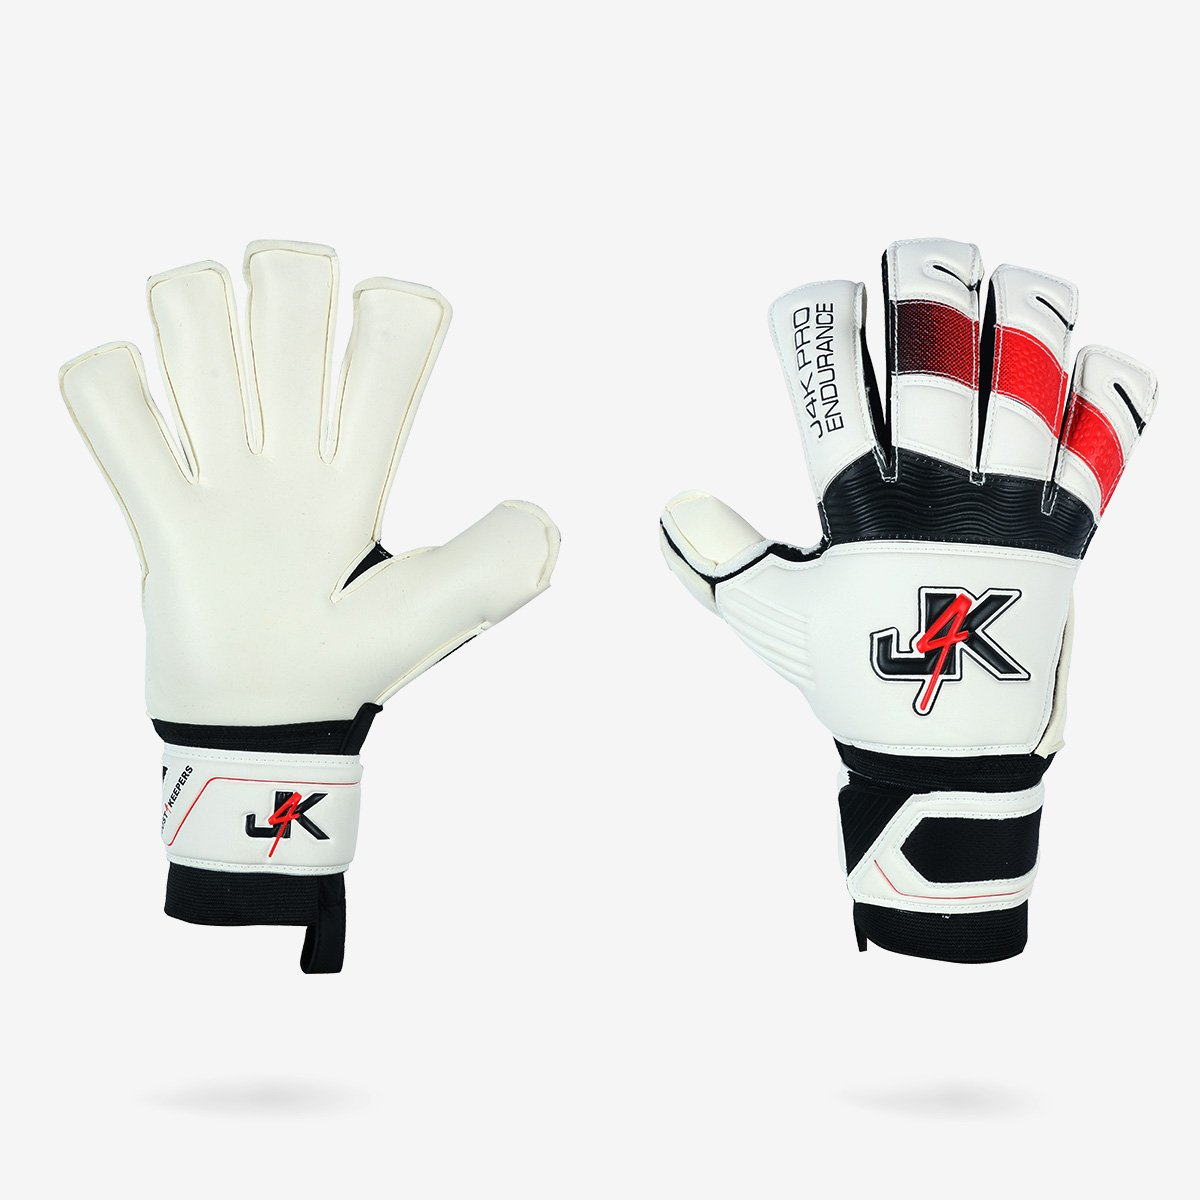 j4 K FusionハイブリッドPro指セーバーImprove Your Goalkeeping、The Best on the market 。サイズ7指セーバー B077SKLC3C